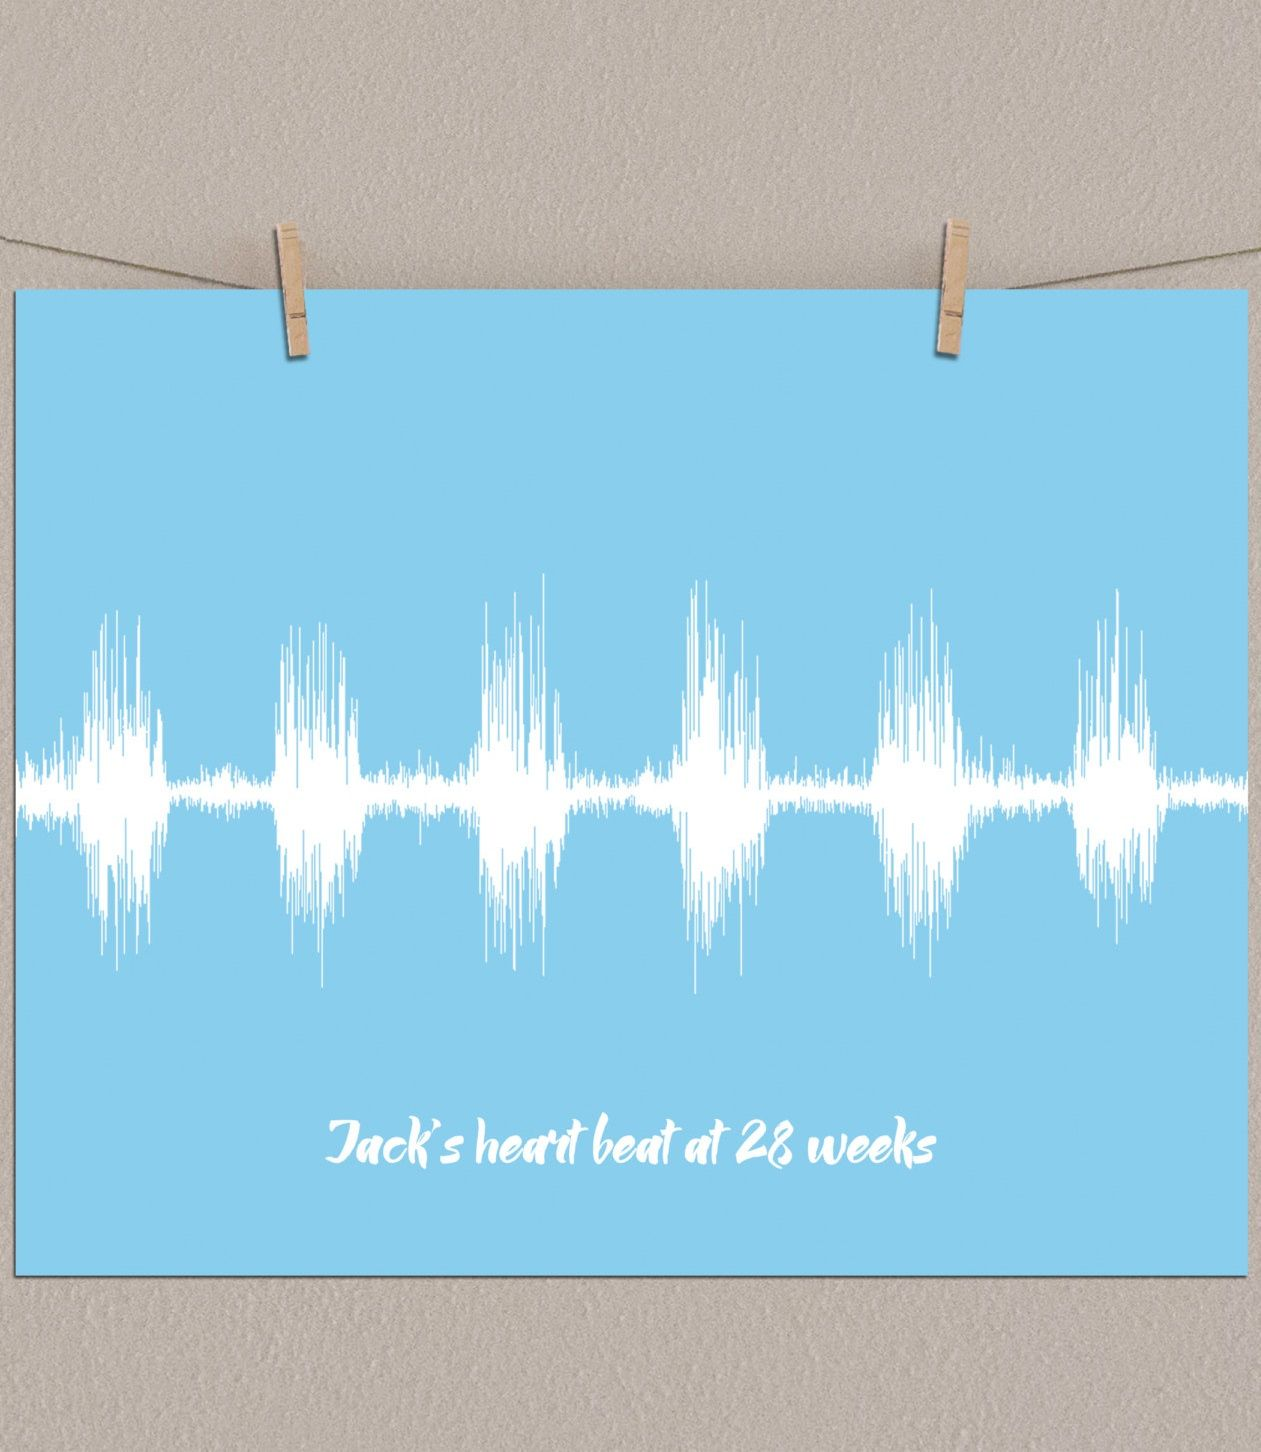 Baby bed heartbeat - Baby Heartbeat Ultrasound Sound Wave Soundwave Heart Beat Art Print Personalized Baby Gift Baby